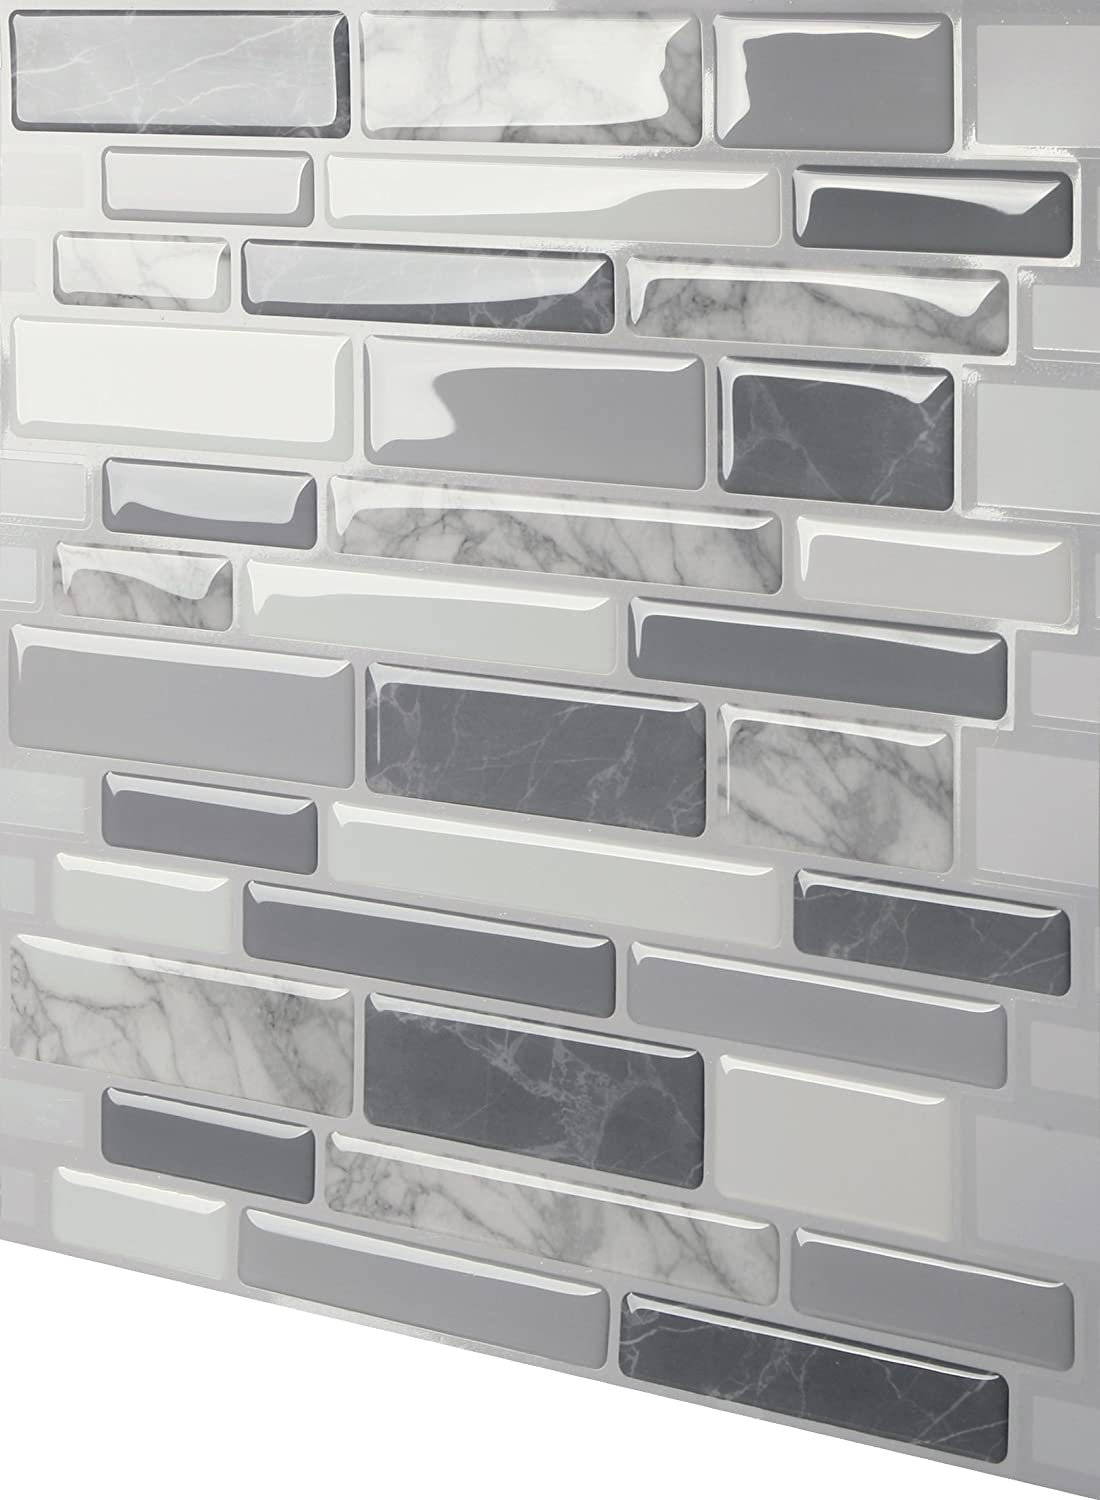 5 Tiles Tic Tac Tiles Premium Anti-Mold Peel and Stick Wall Tile in Polito Gray